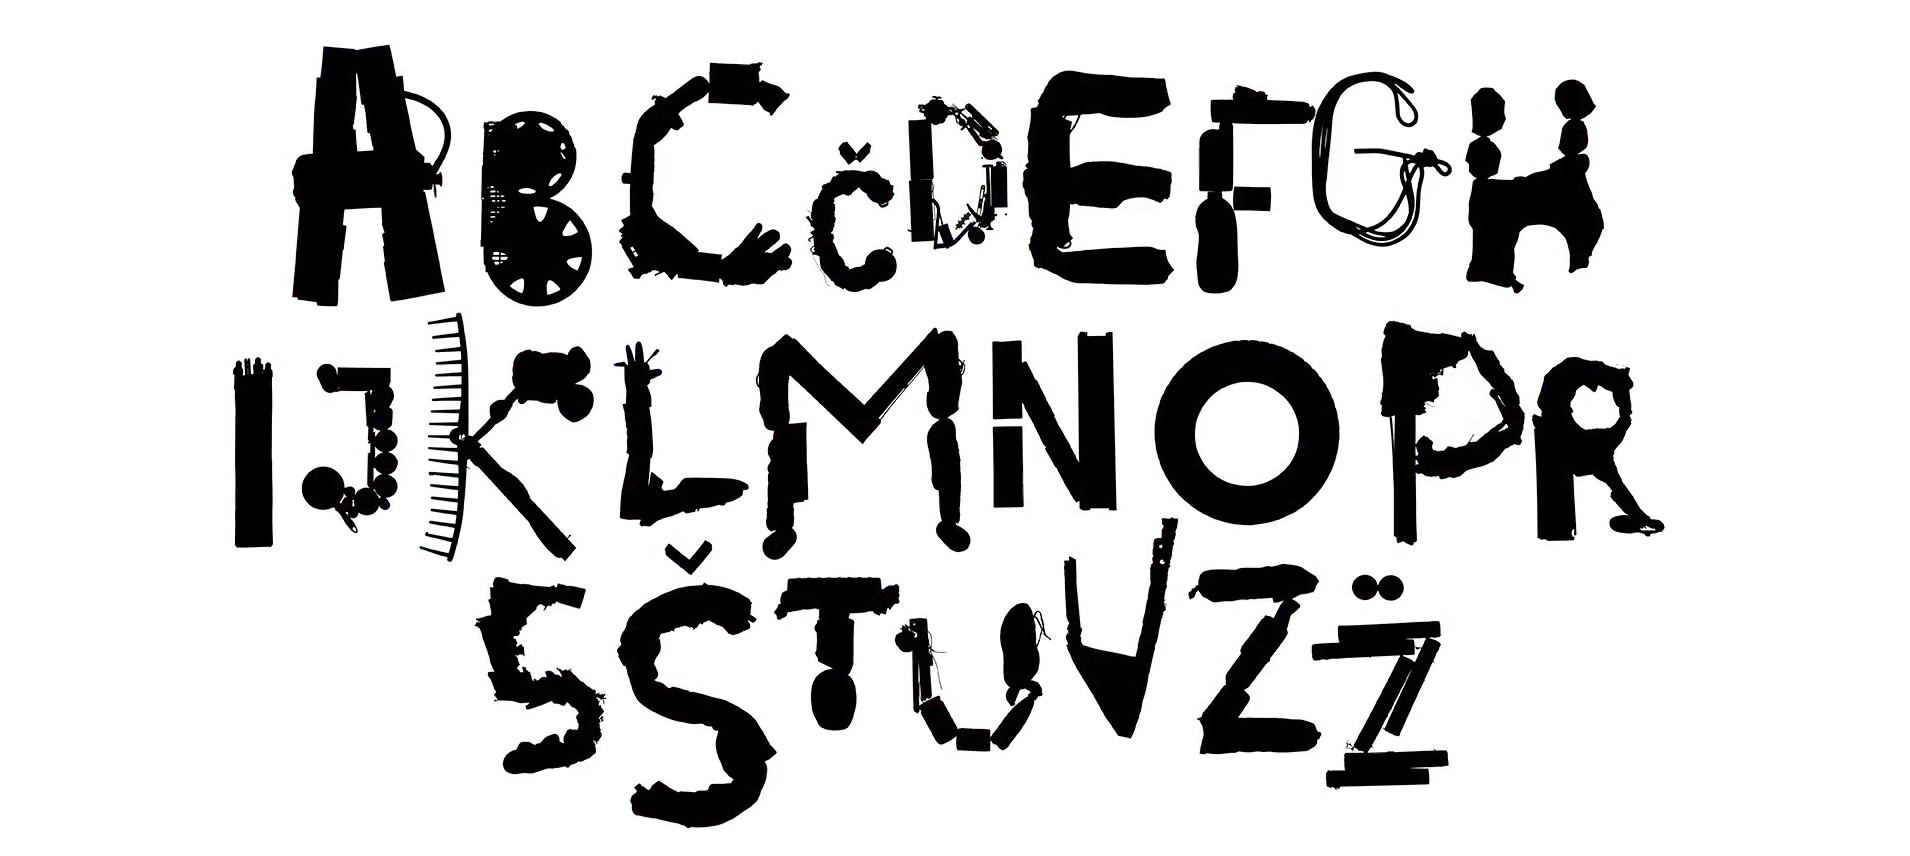 cleanest font 2